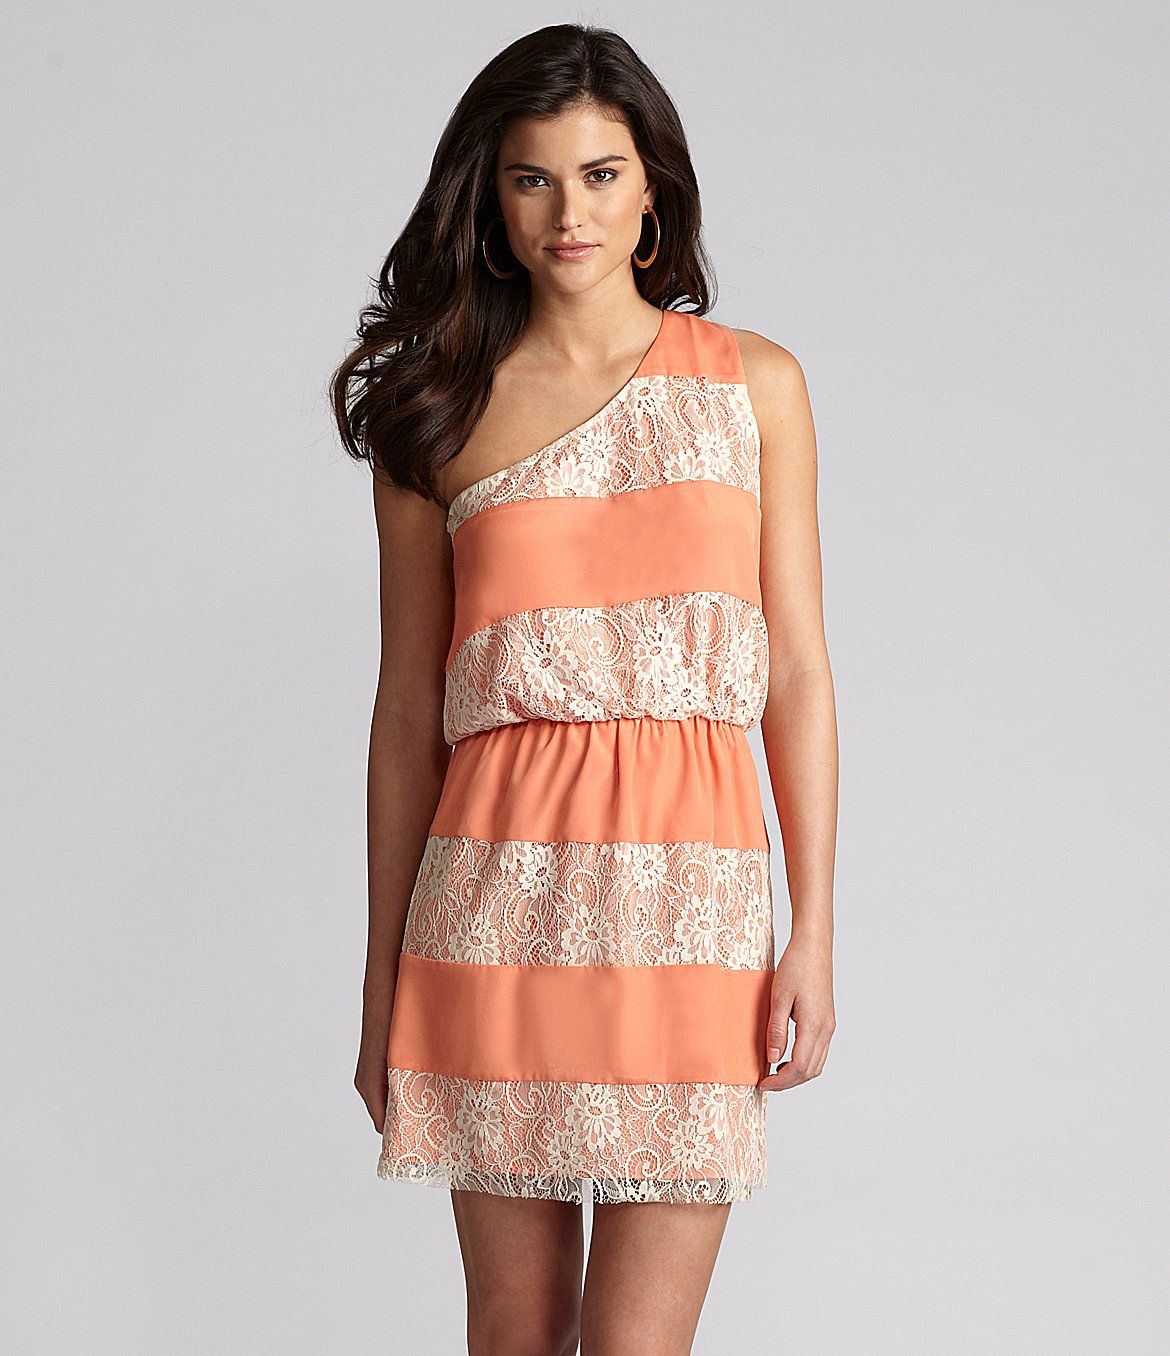 Black lace dress for summer wedding  Gianni Bini Miriam Dress  Clothes   Pinterest  Coral lace